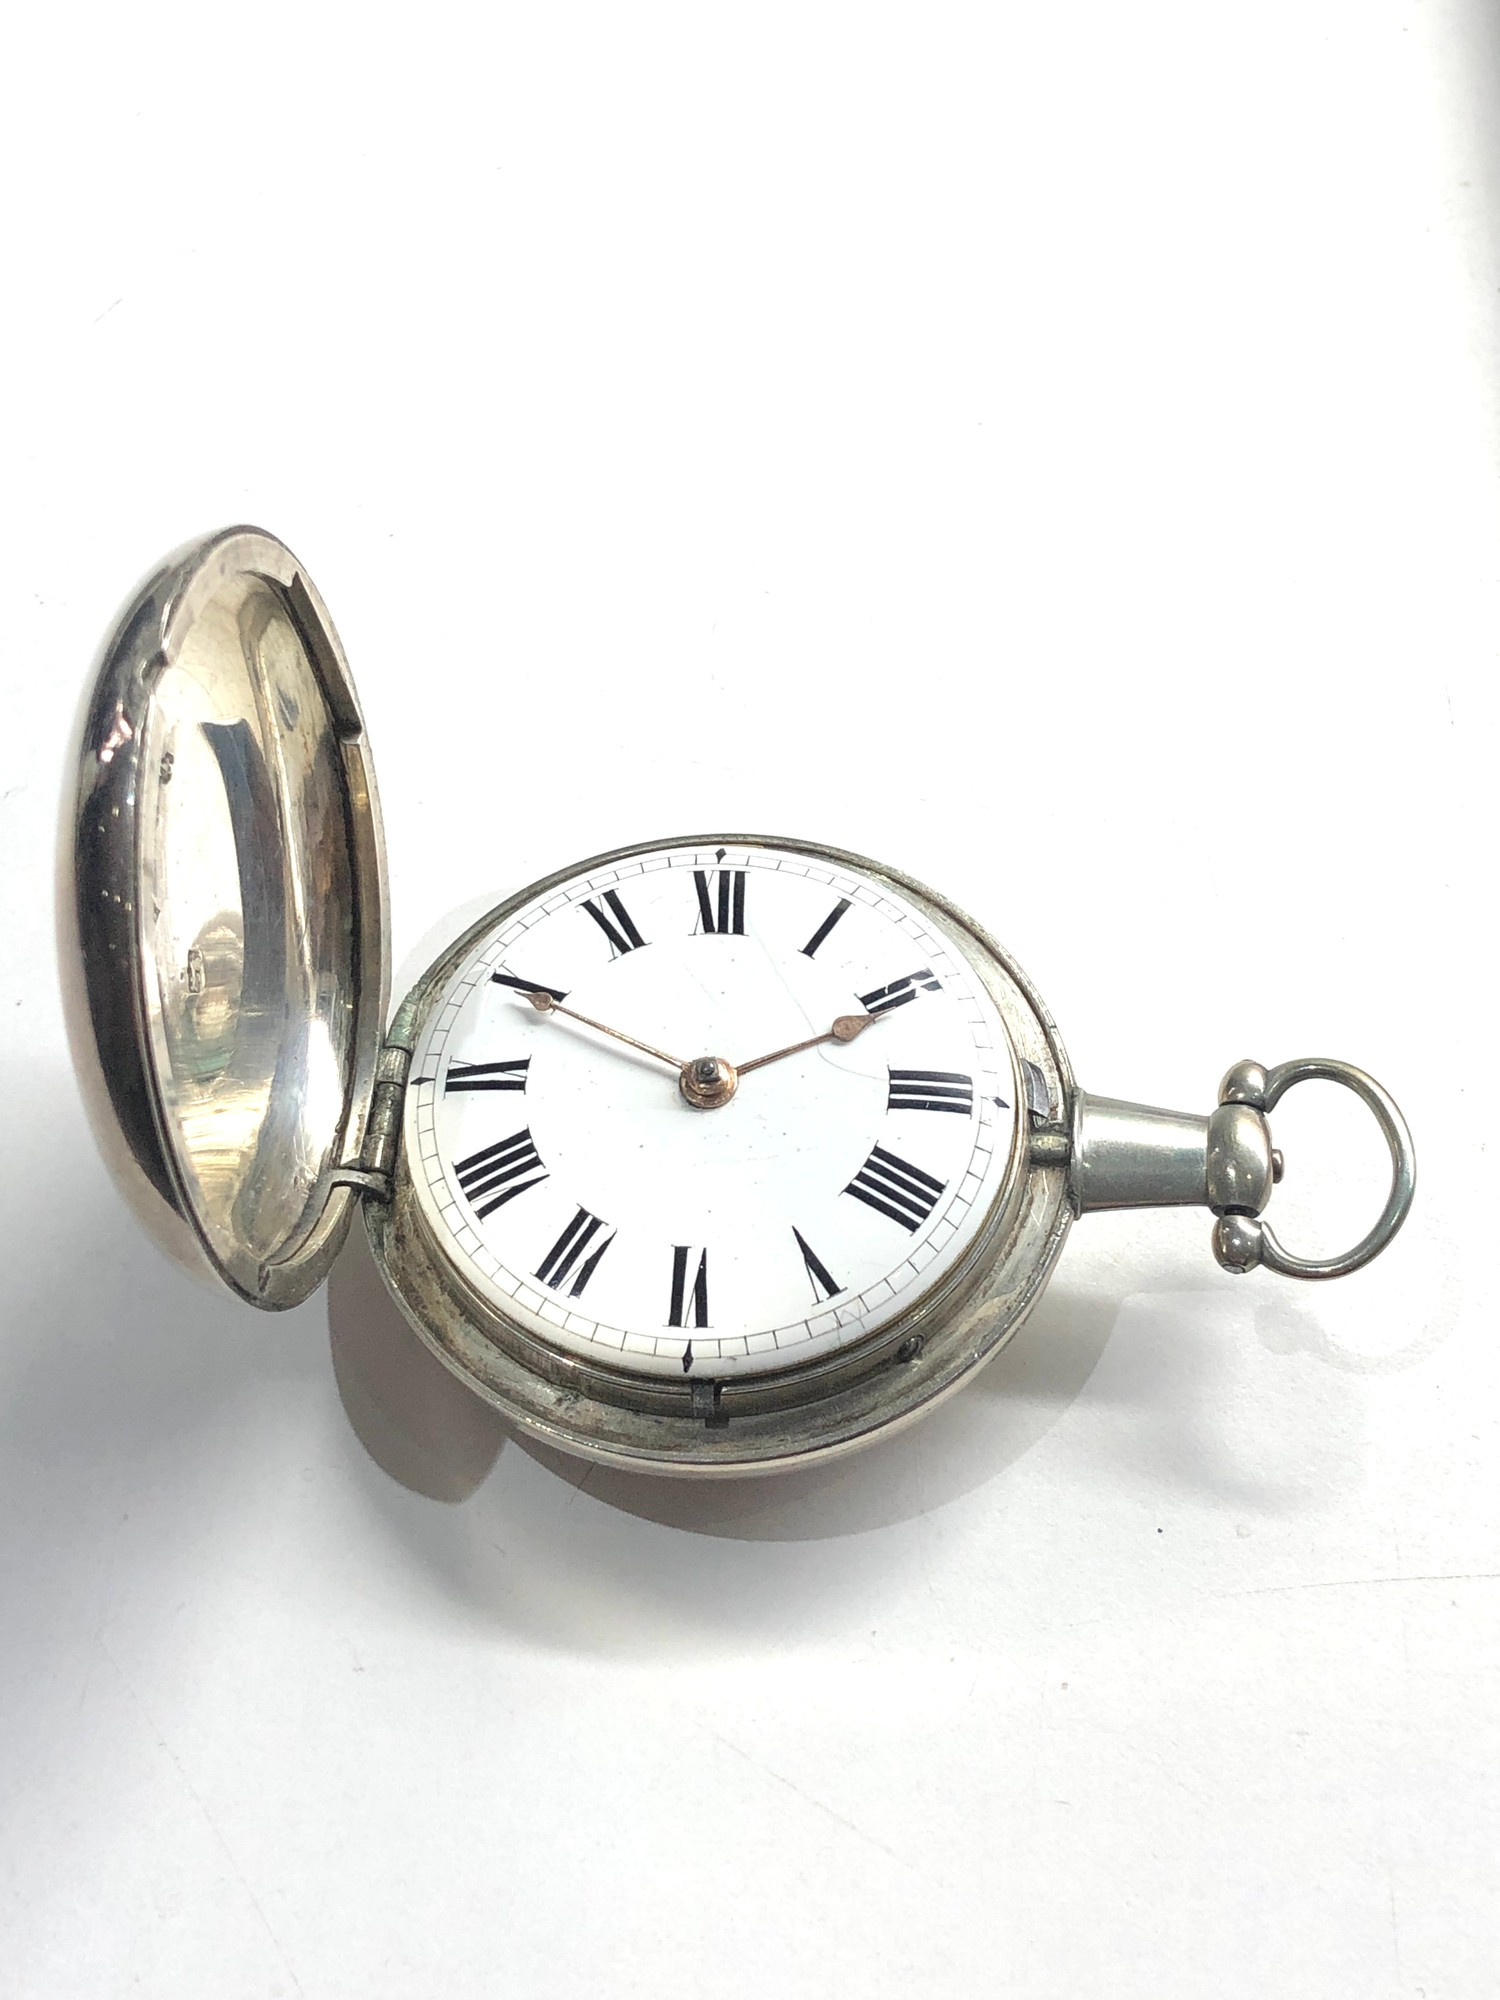 Fine antique silver full hunter case verge fusee pocket watch by Rob Turnball Greenock watch is in